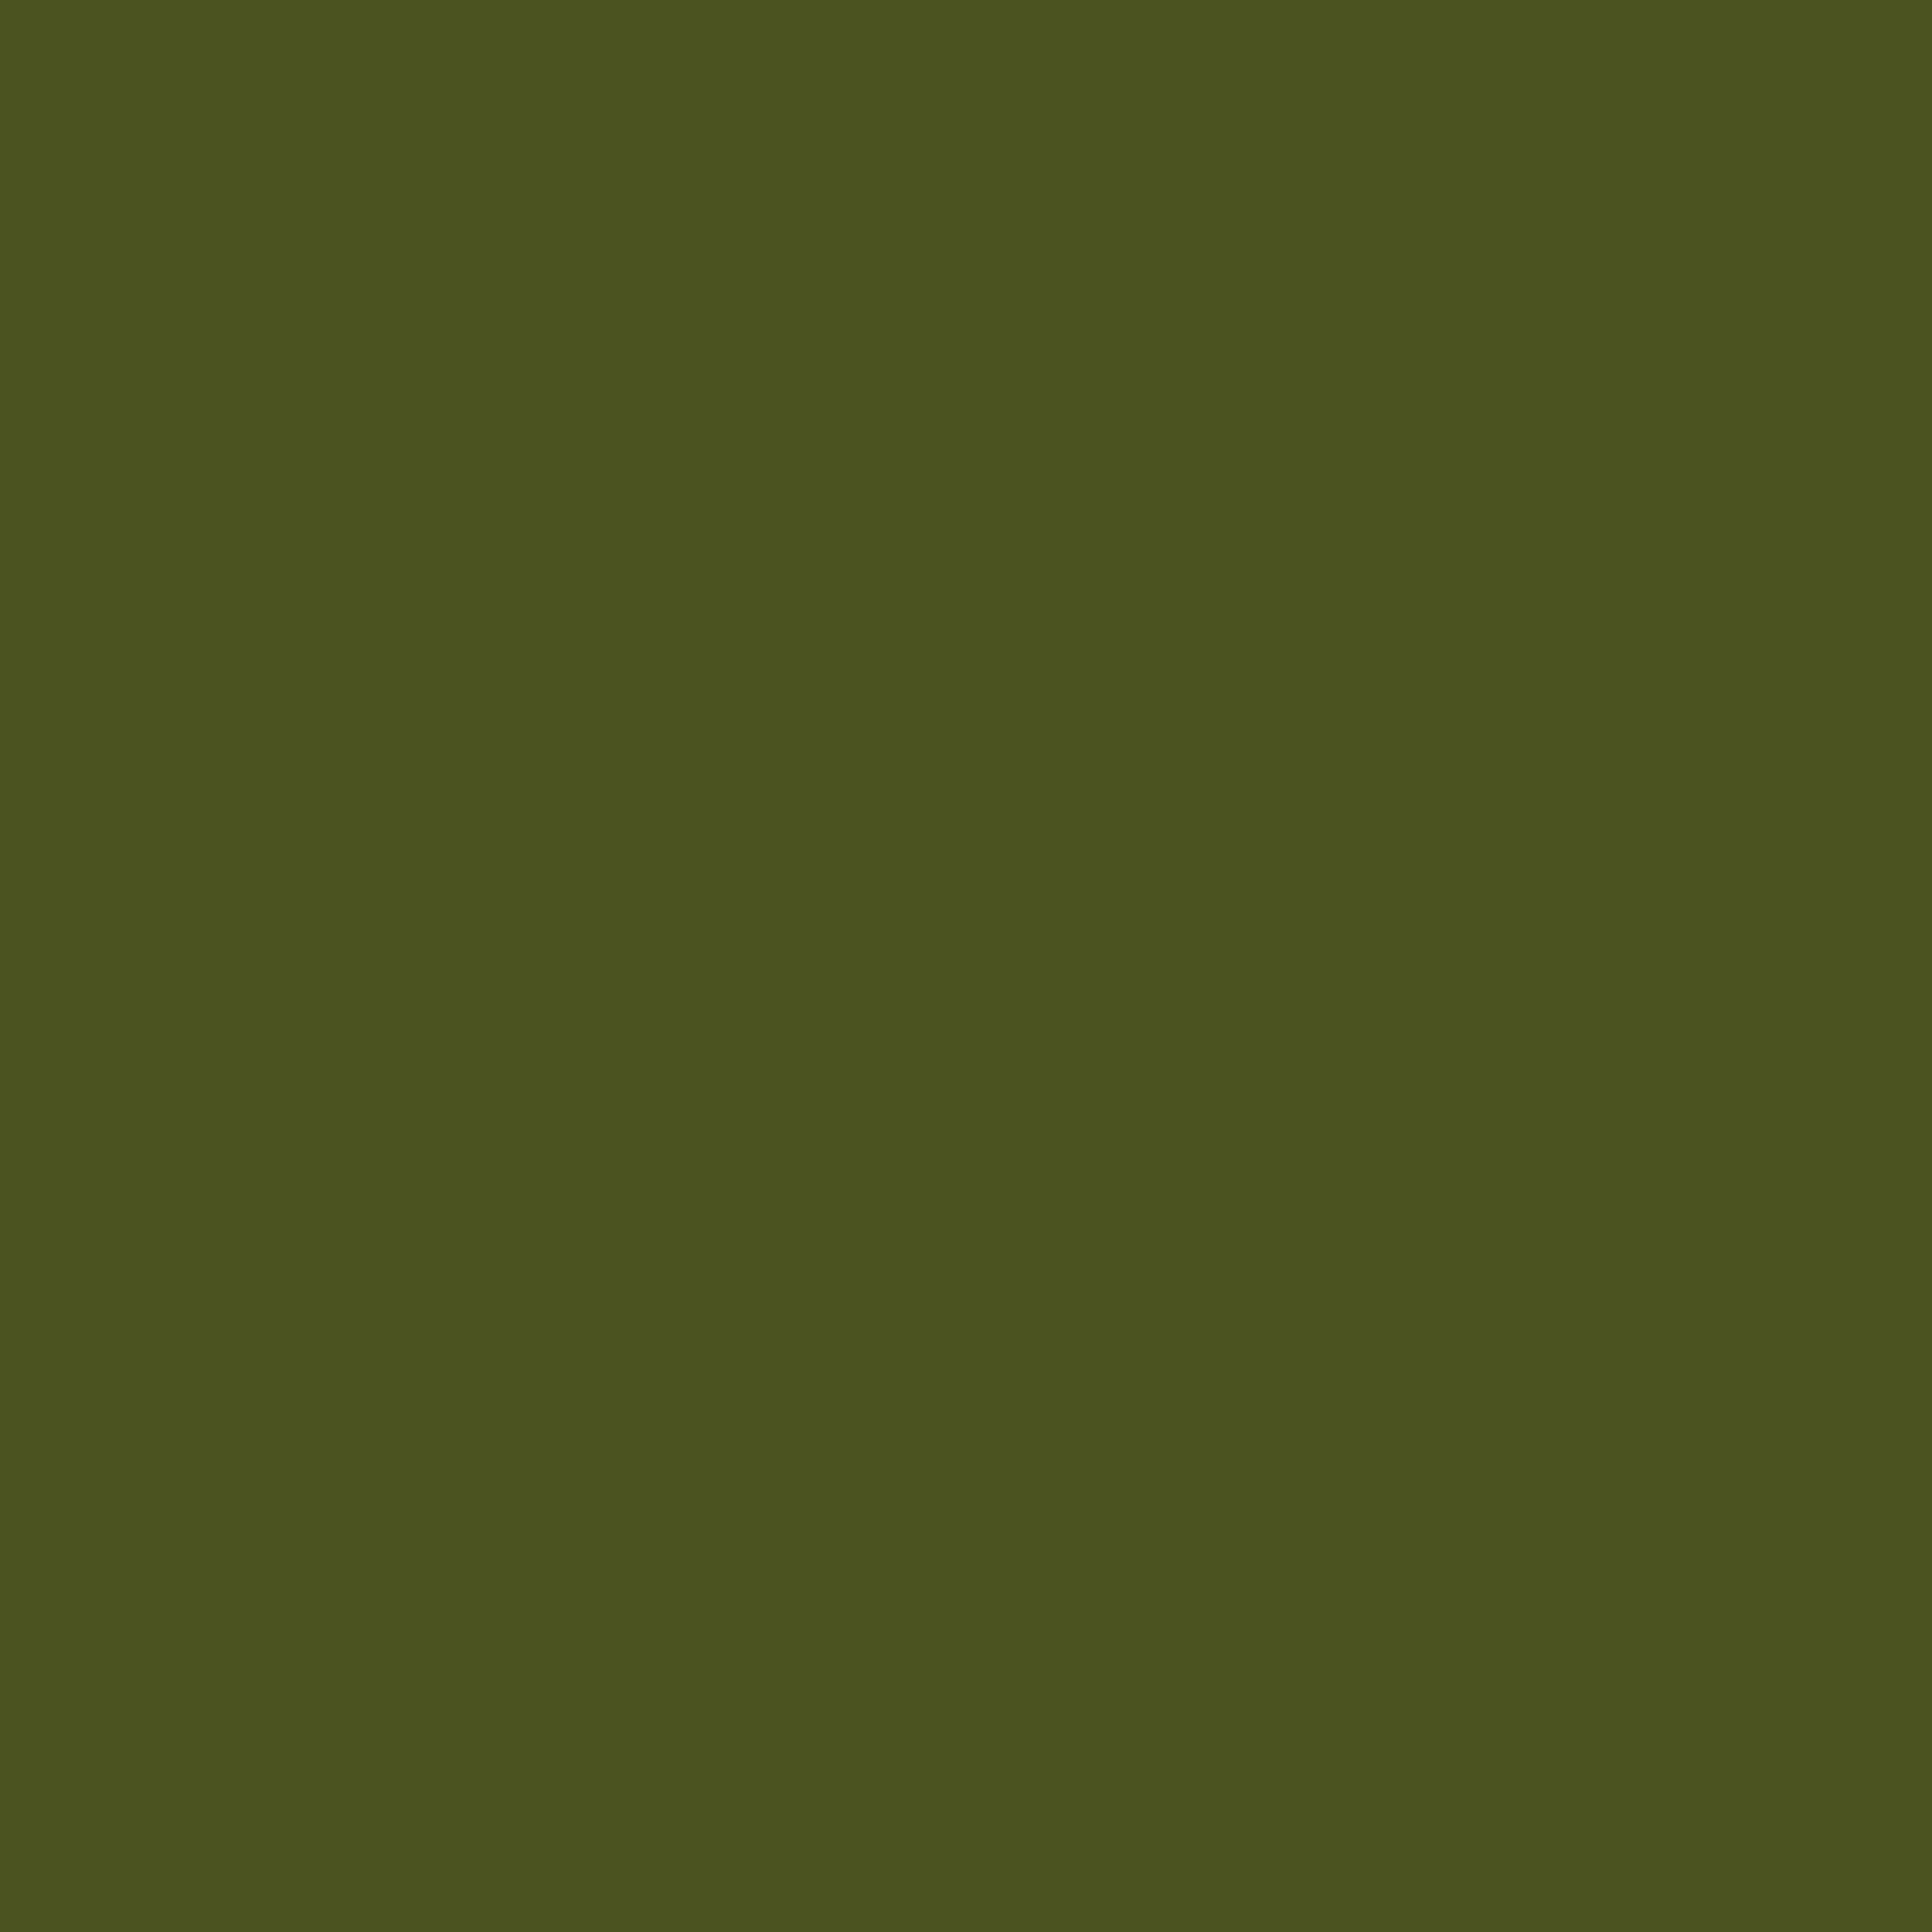 3600x3600 Army Green Solid Color Background